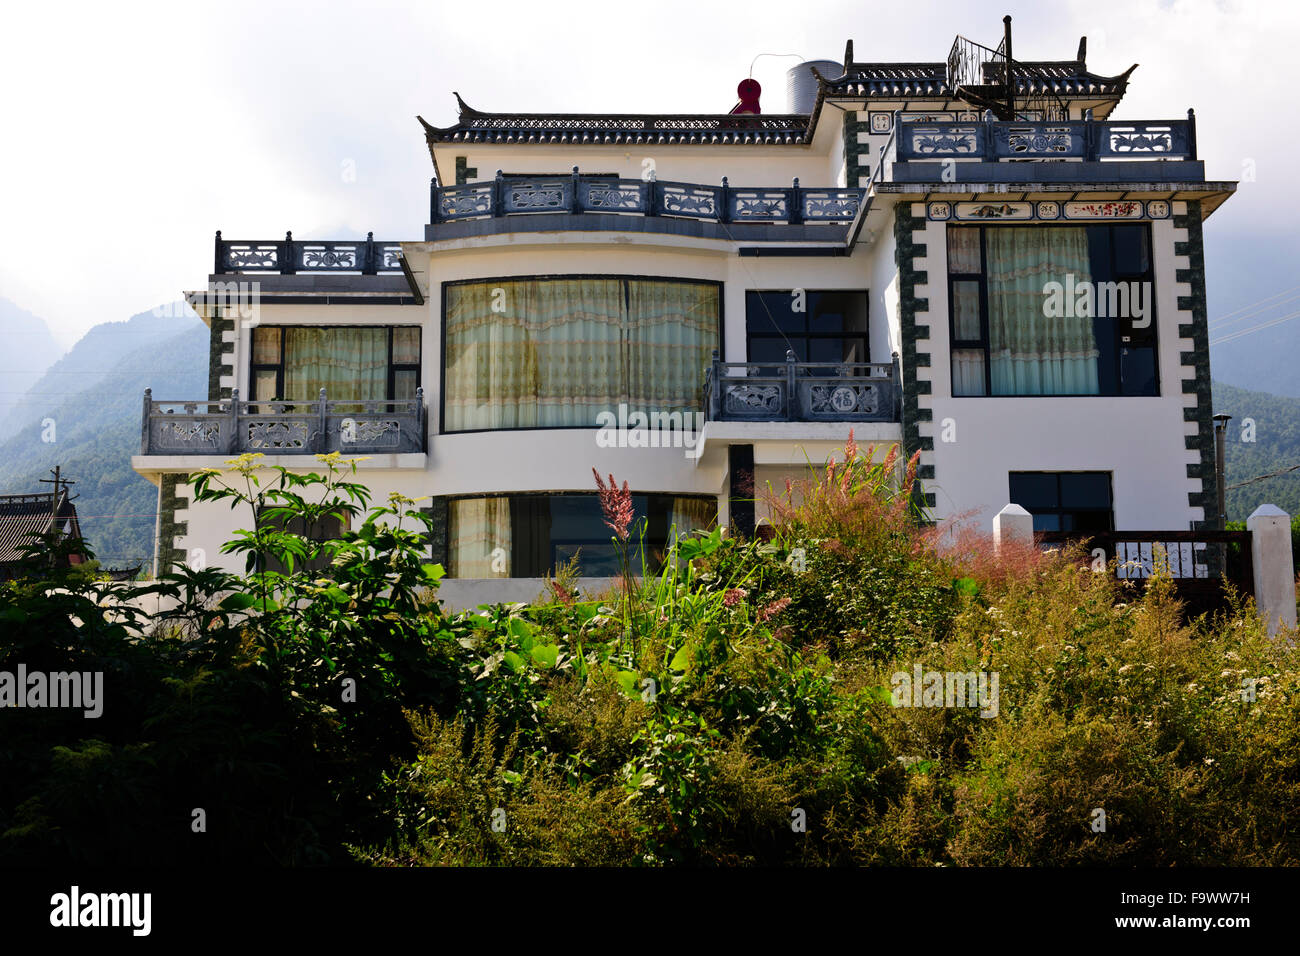 Traditional Bai Ethnic Peoples Modern Stone Houses Built In White Wallssloping Tiled RoofsDaliYunnanChina